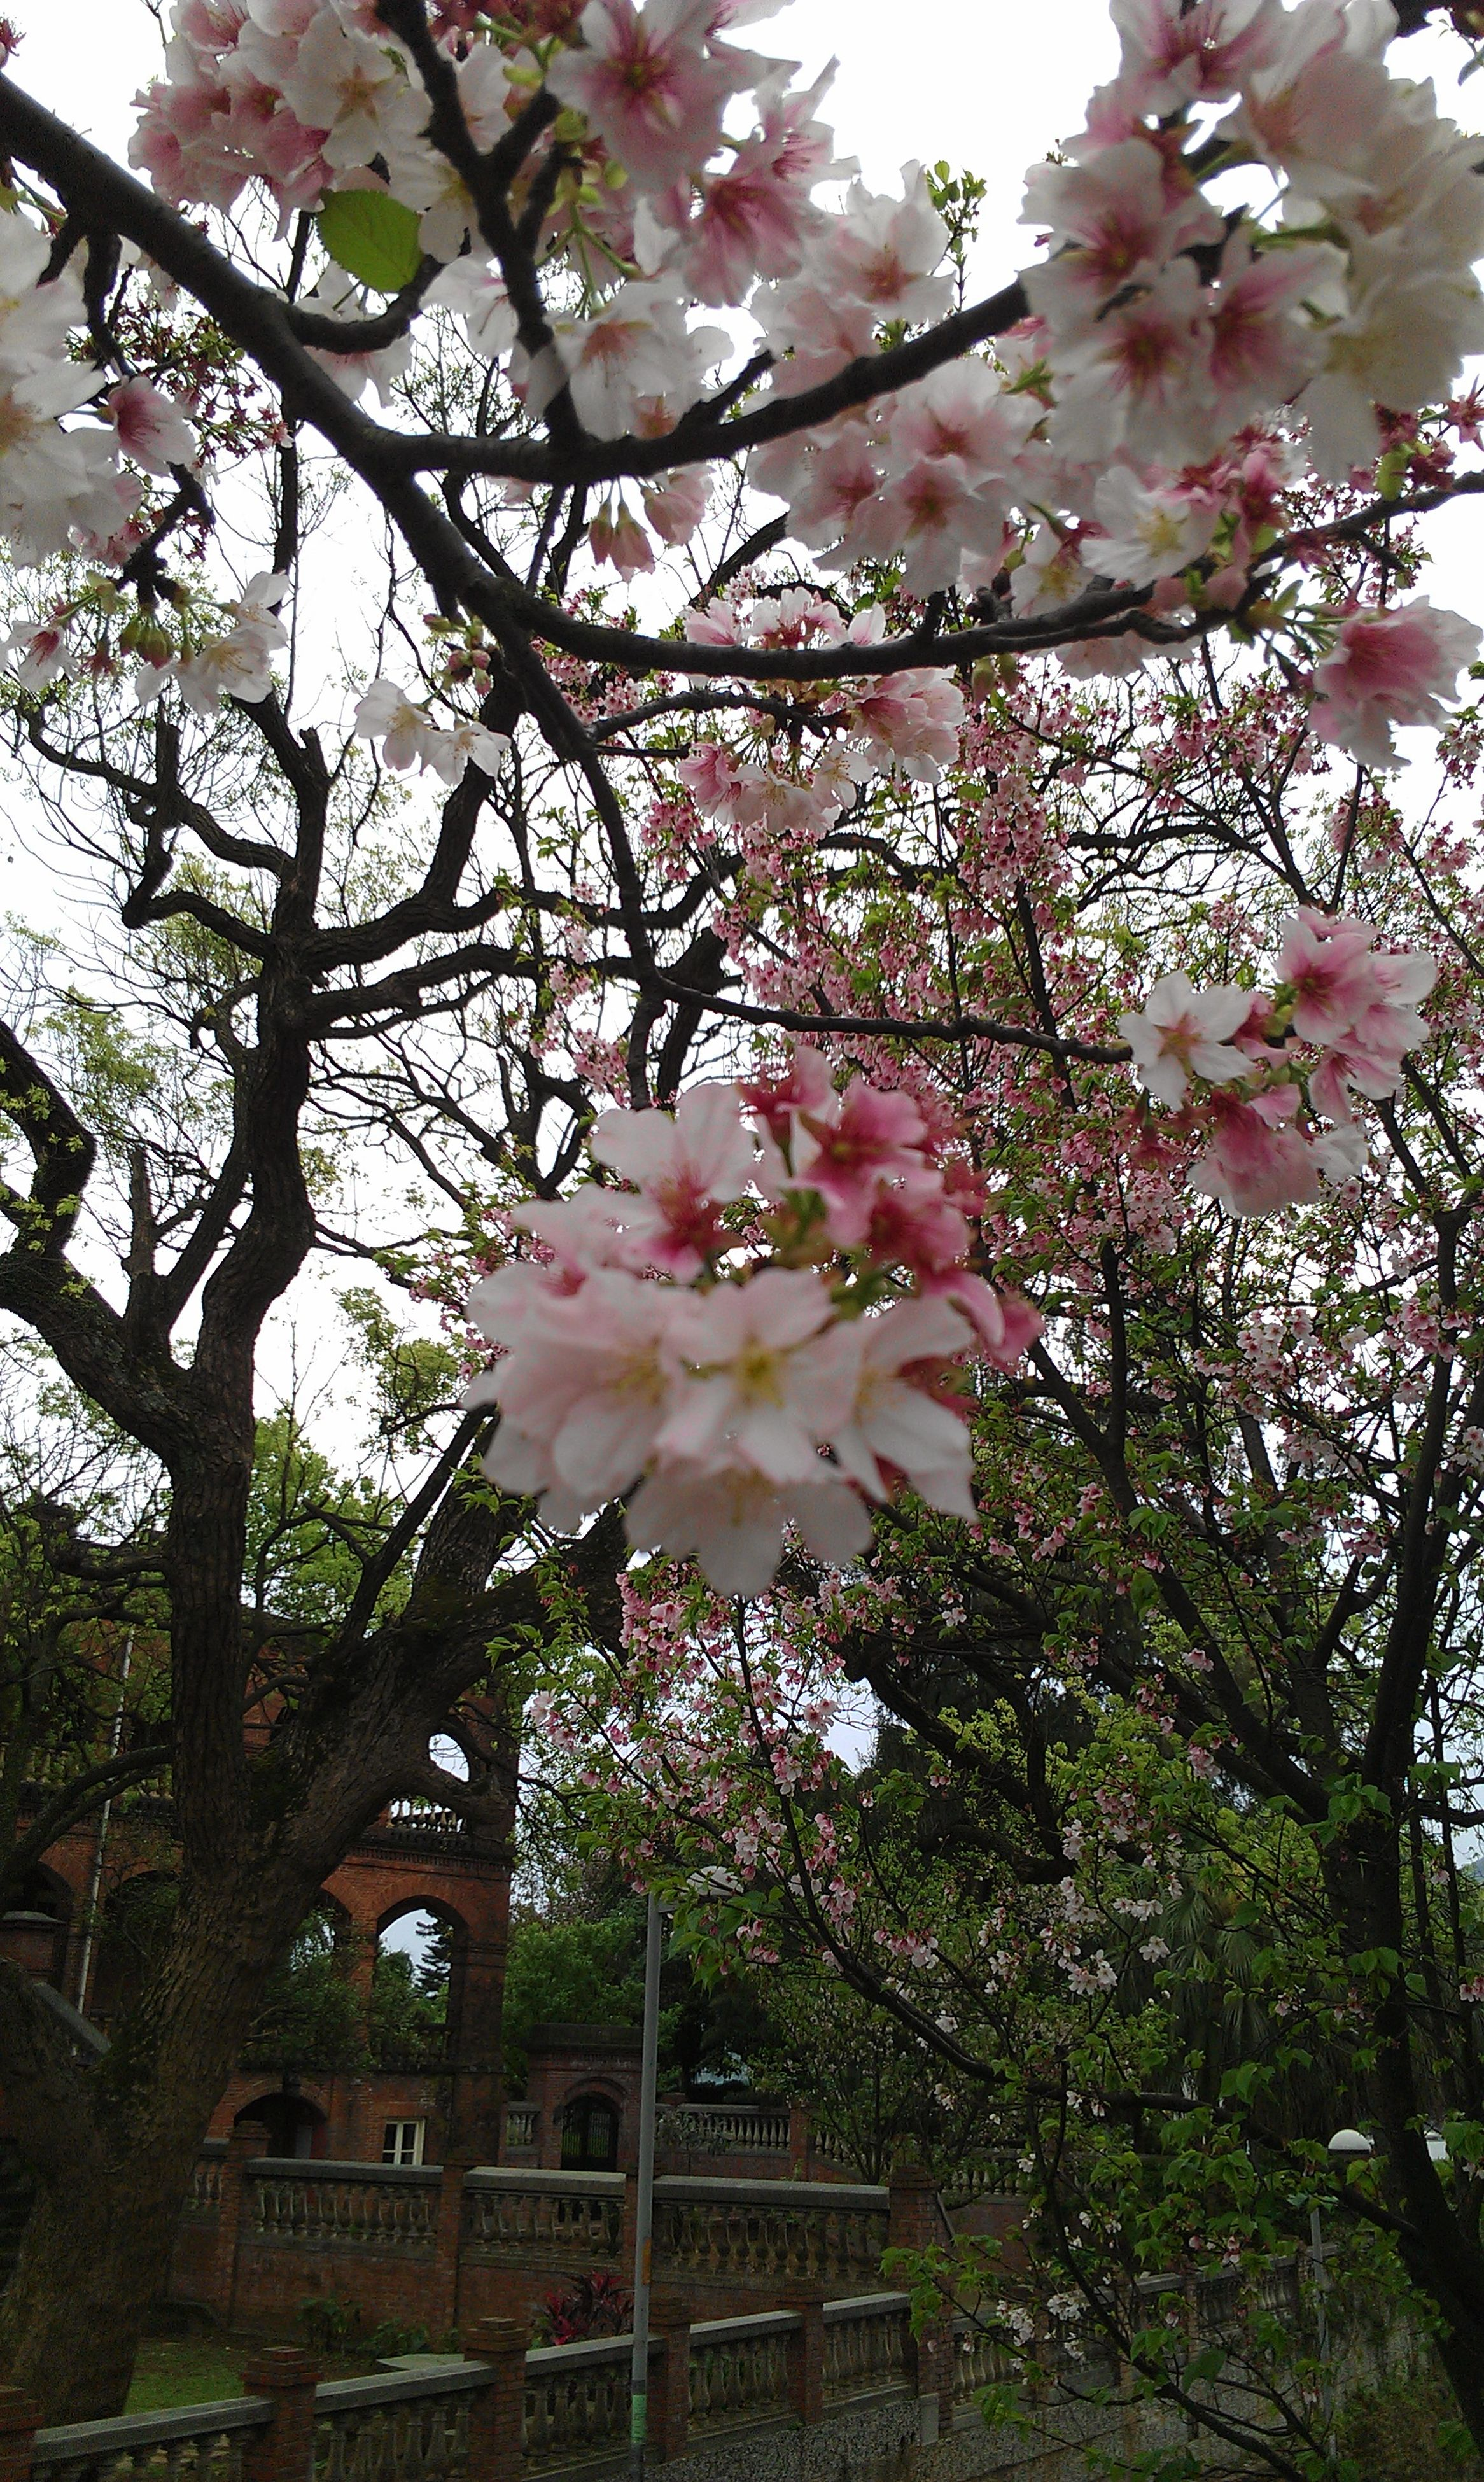 flower, tree, freshness, growth, branch, pink color, fragility, low angle view, blossom, beauty in nature, nature, cherry blossom, in bloom, blooming, sky, cherry tree, petal, built structure, architecture, springtime